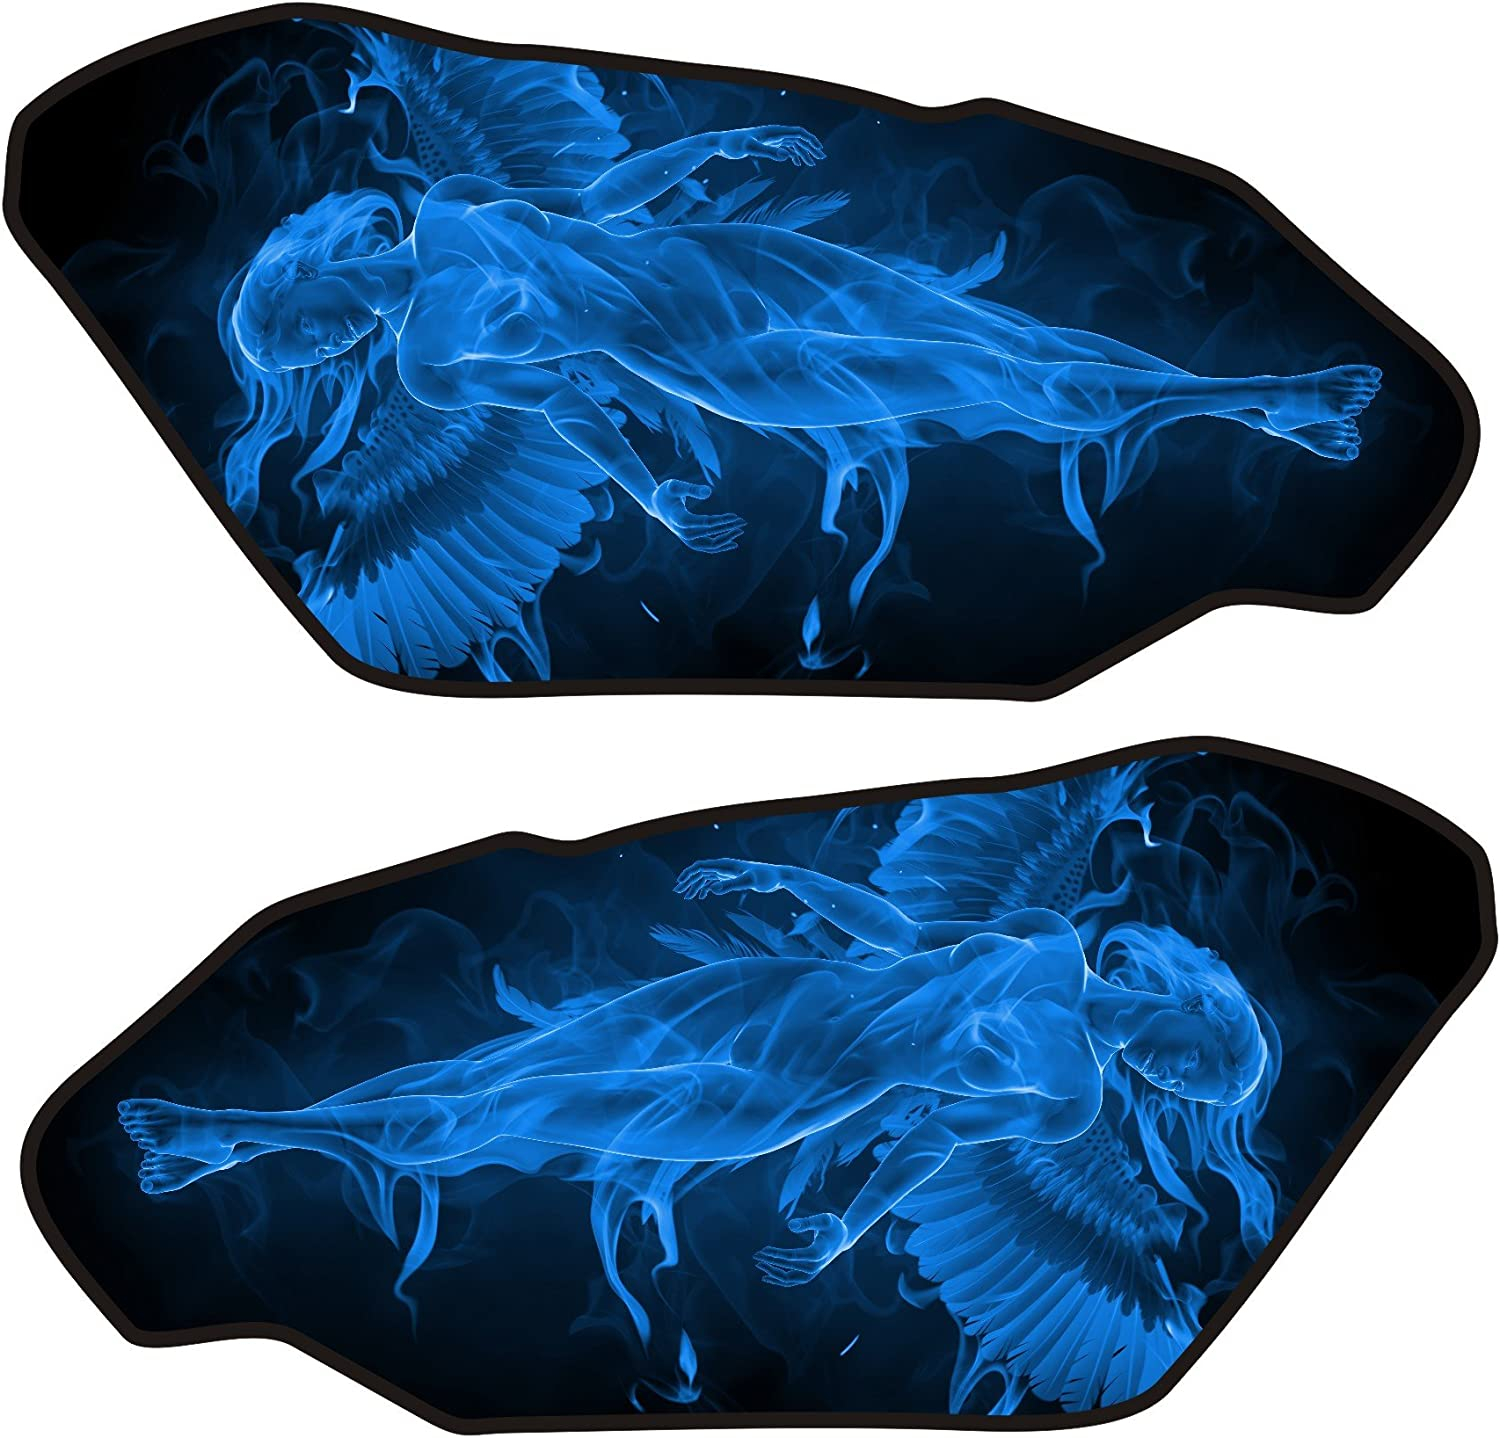 Size is 4.4 in tall x 9.3 in wide Universal Fire Angel Blue 3d Gel Motorcycle Gas Tankpad side protectors